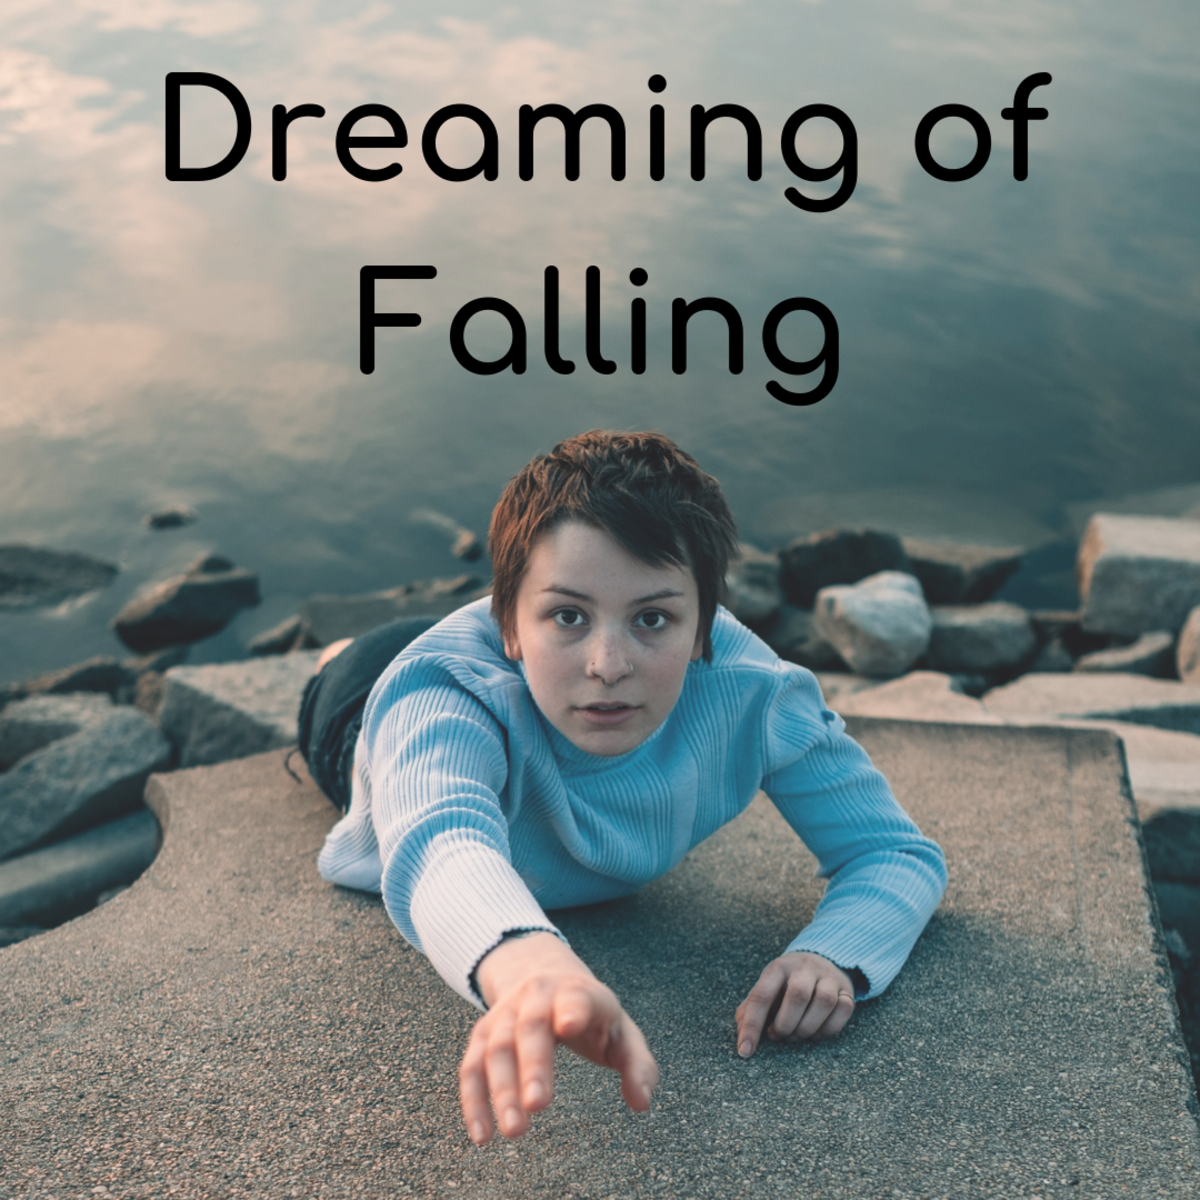 What Does It Mean When You Dream About Falling?